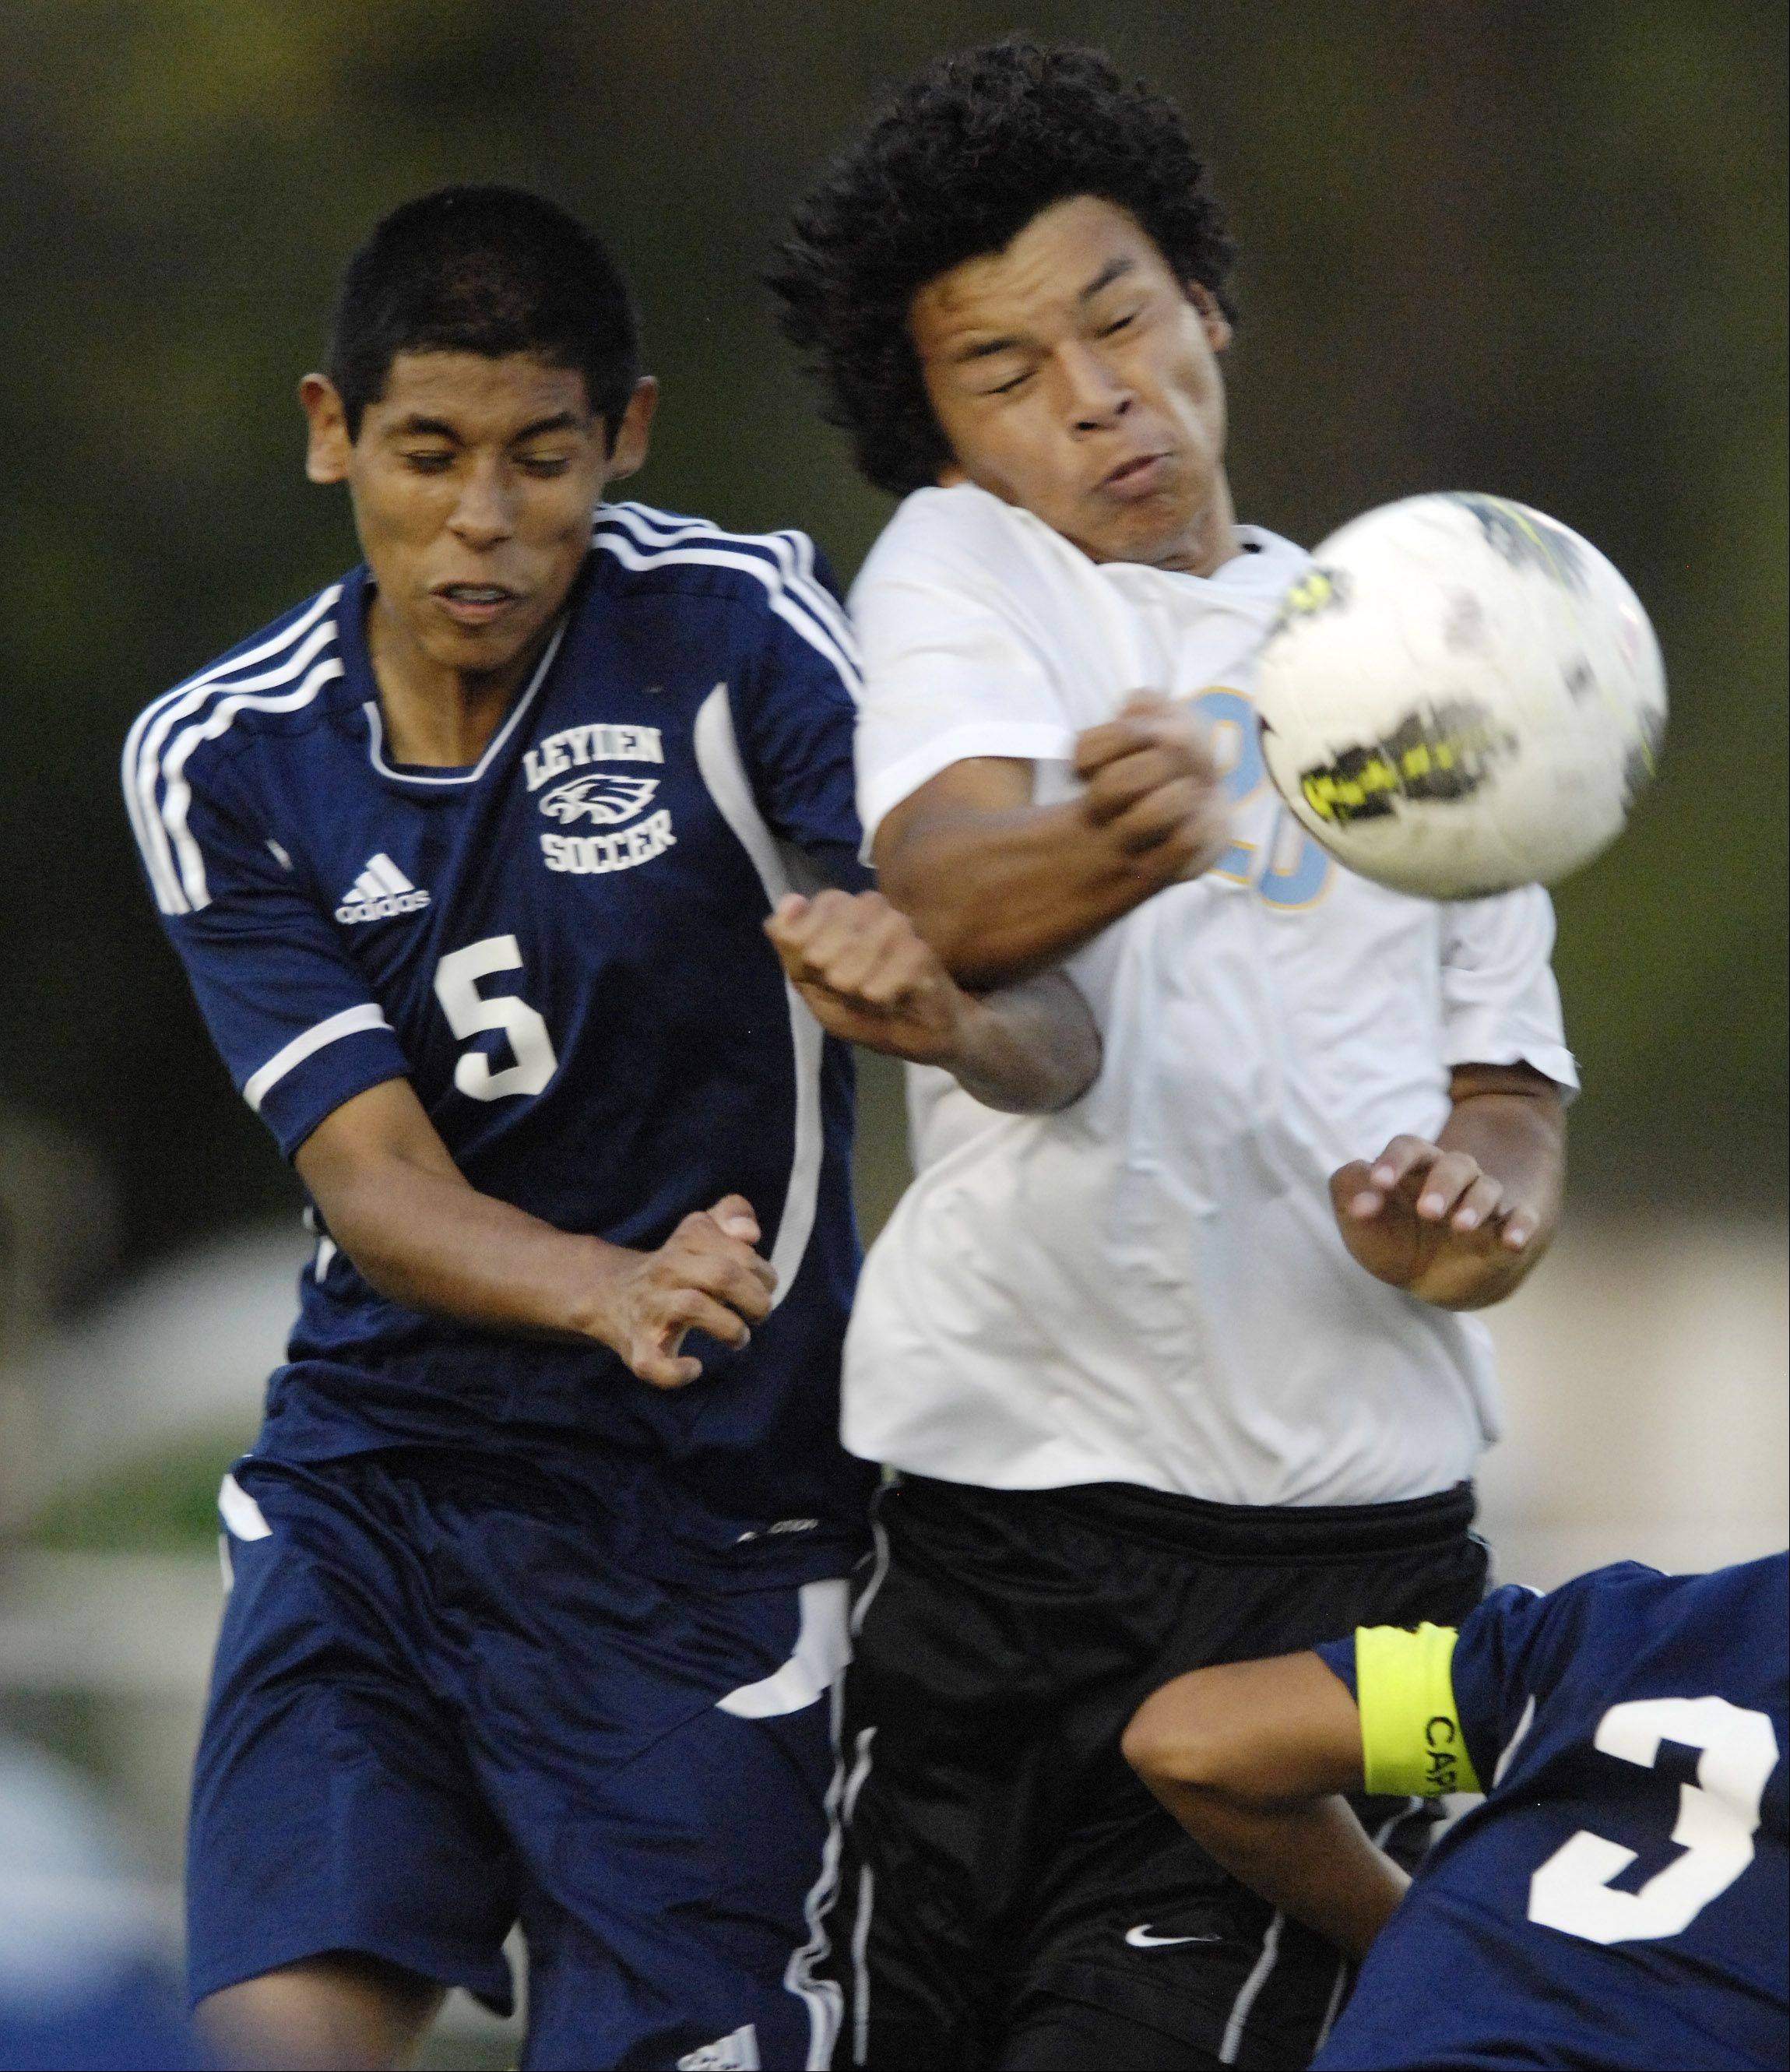 Leyden's Moises Merlos, left, and Maine Wests' Nelson Herrara leap in an effort to control the ball during Wednesday's soccer game.